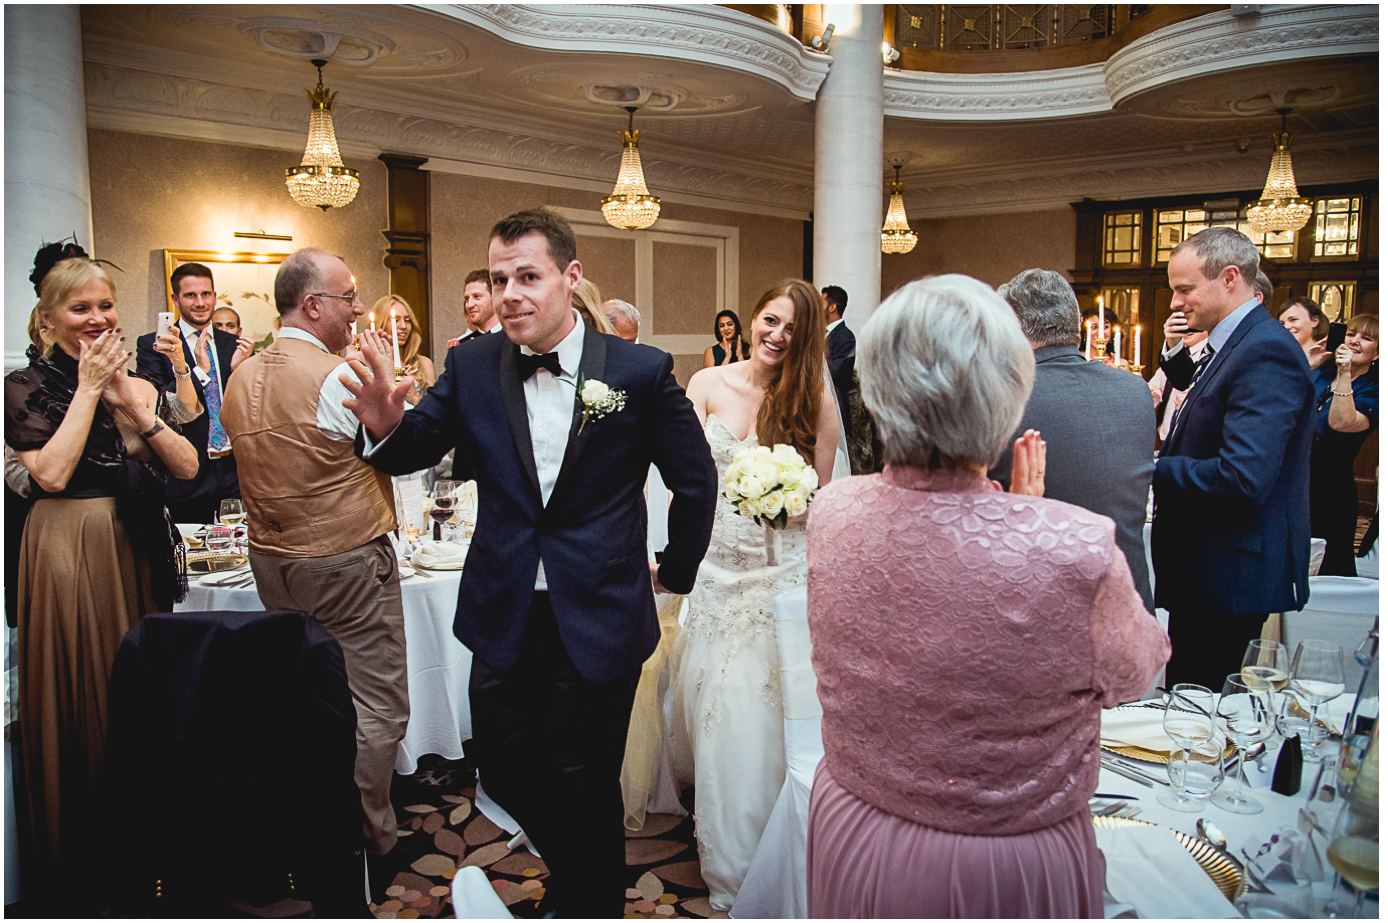 59 - Esmat and Angus - St. Ermin's Hotel London wedding photographer